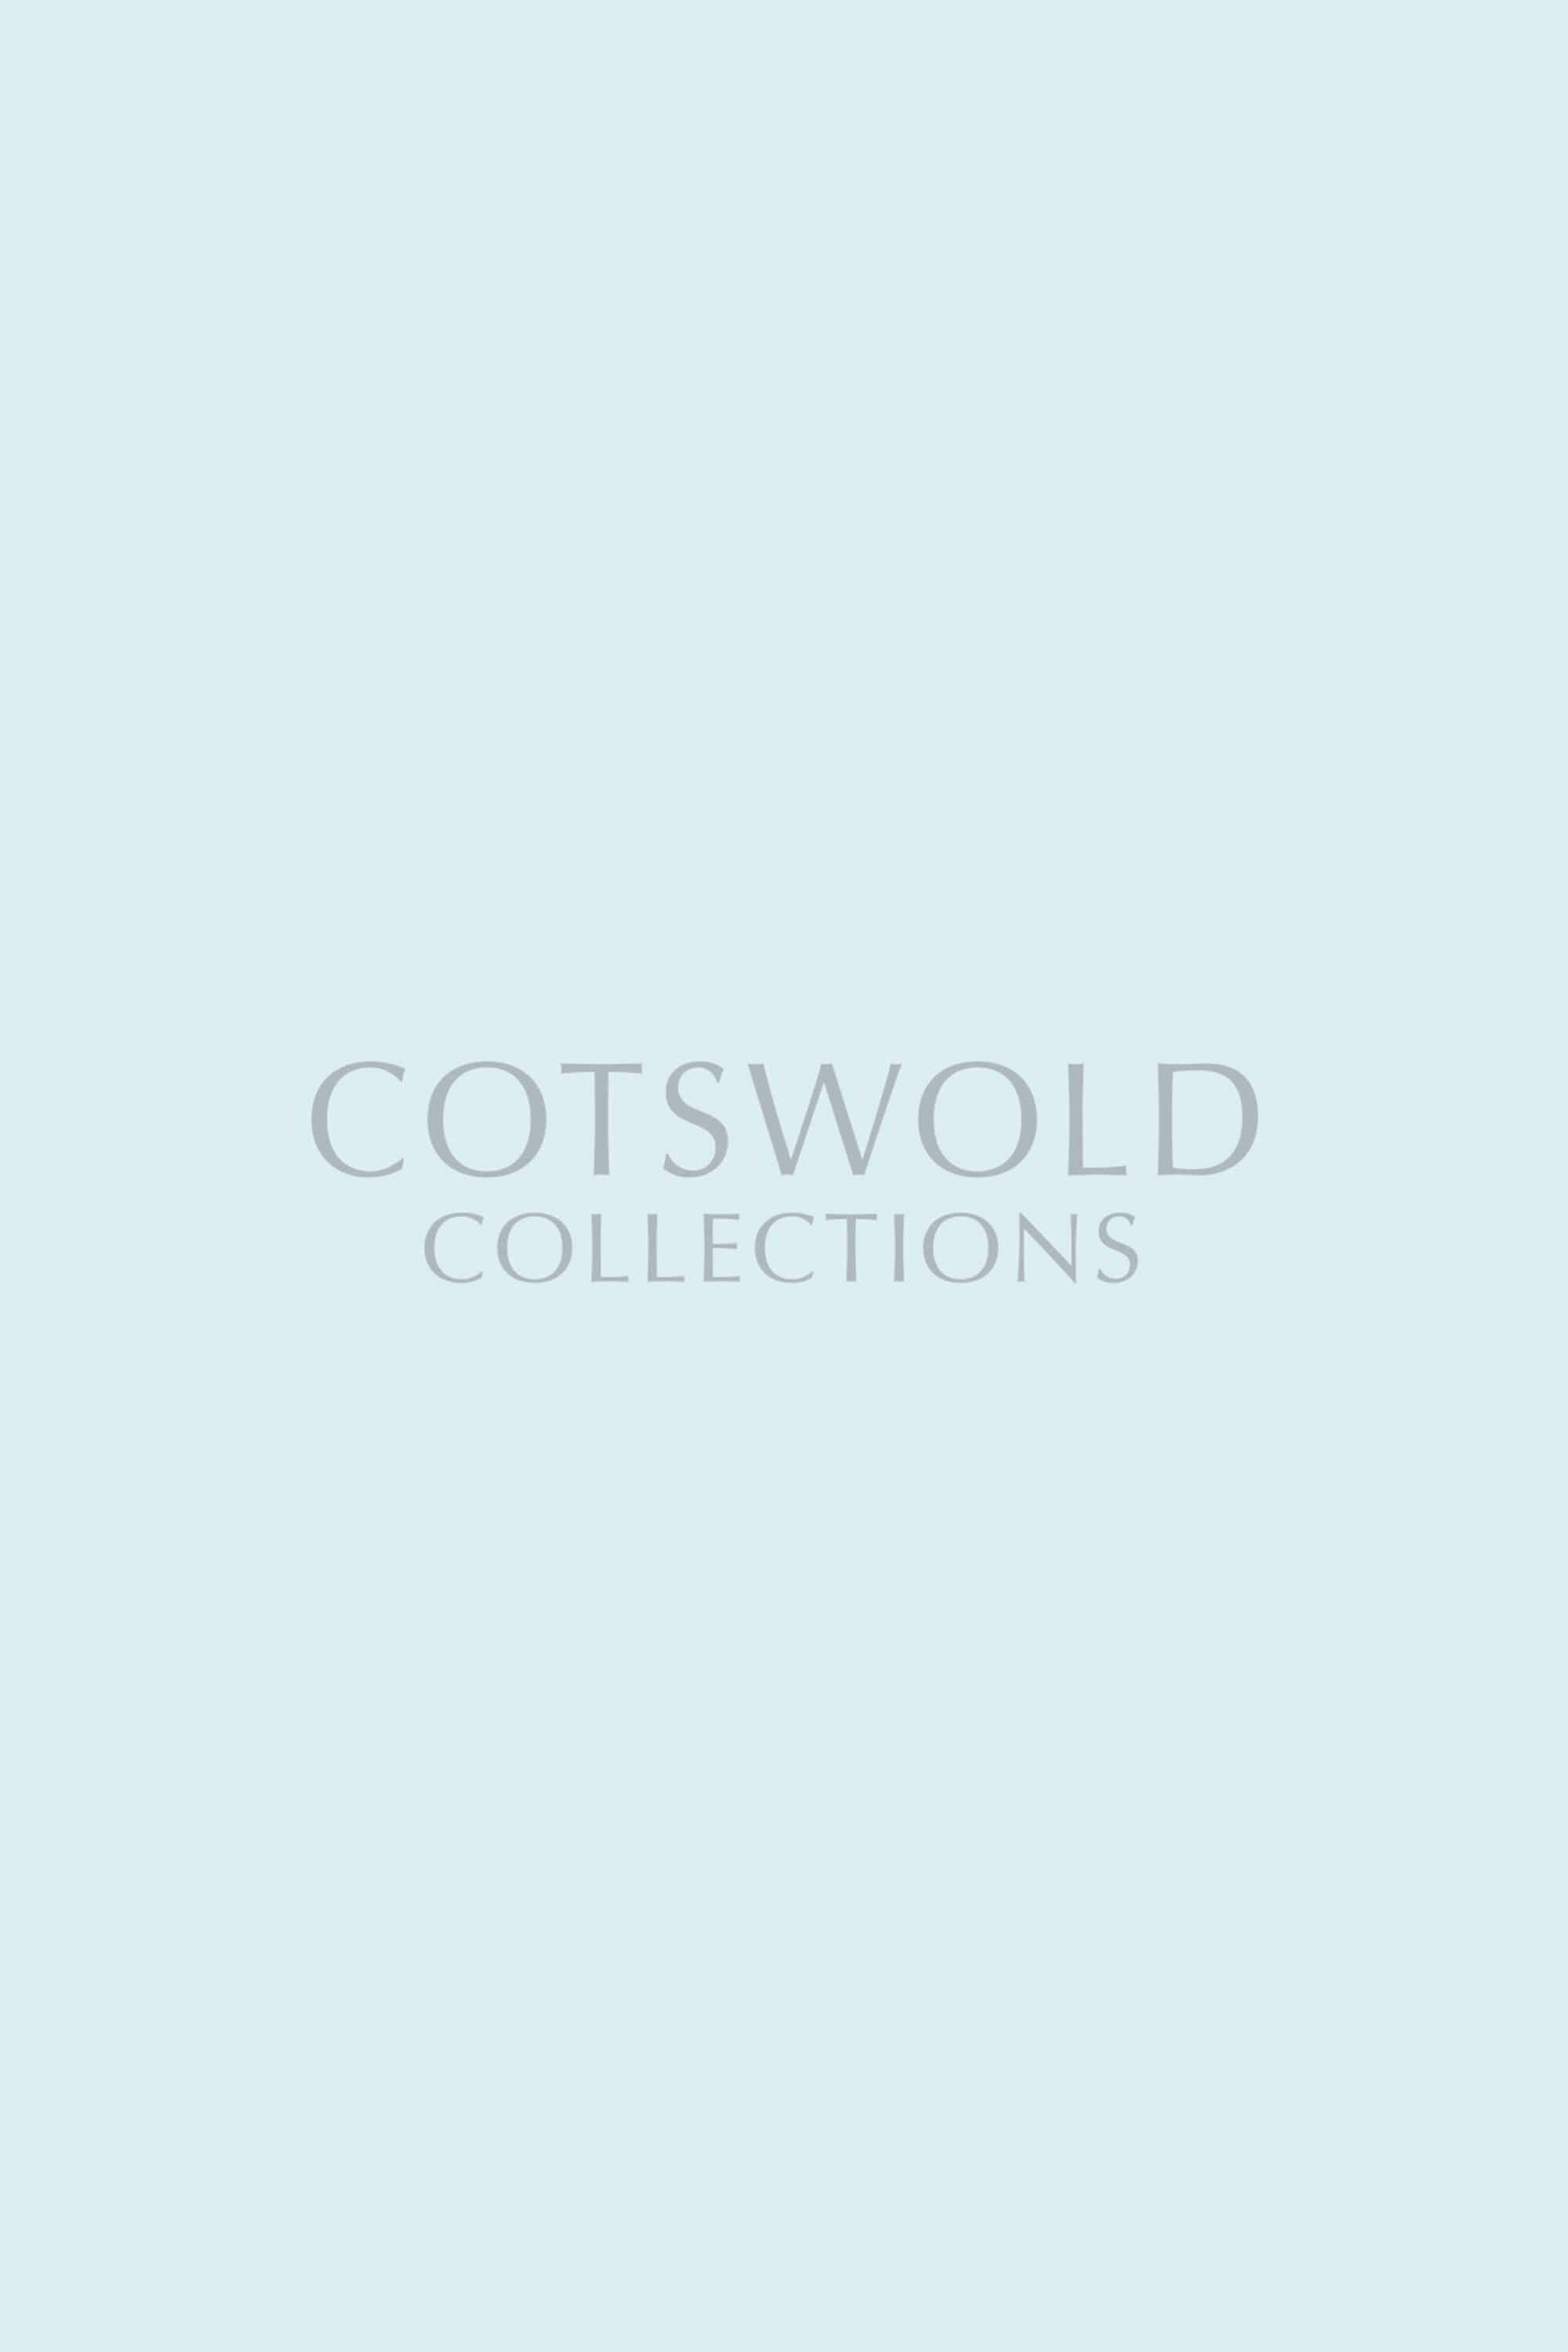 Cotswold Company Ladies Fashions